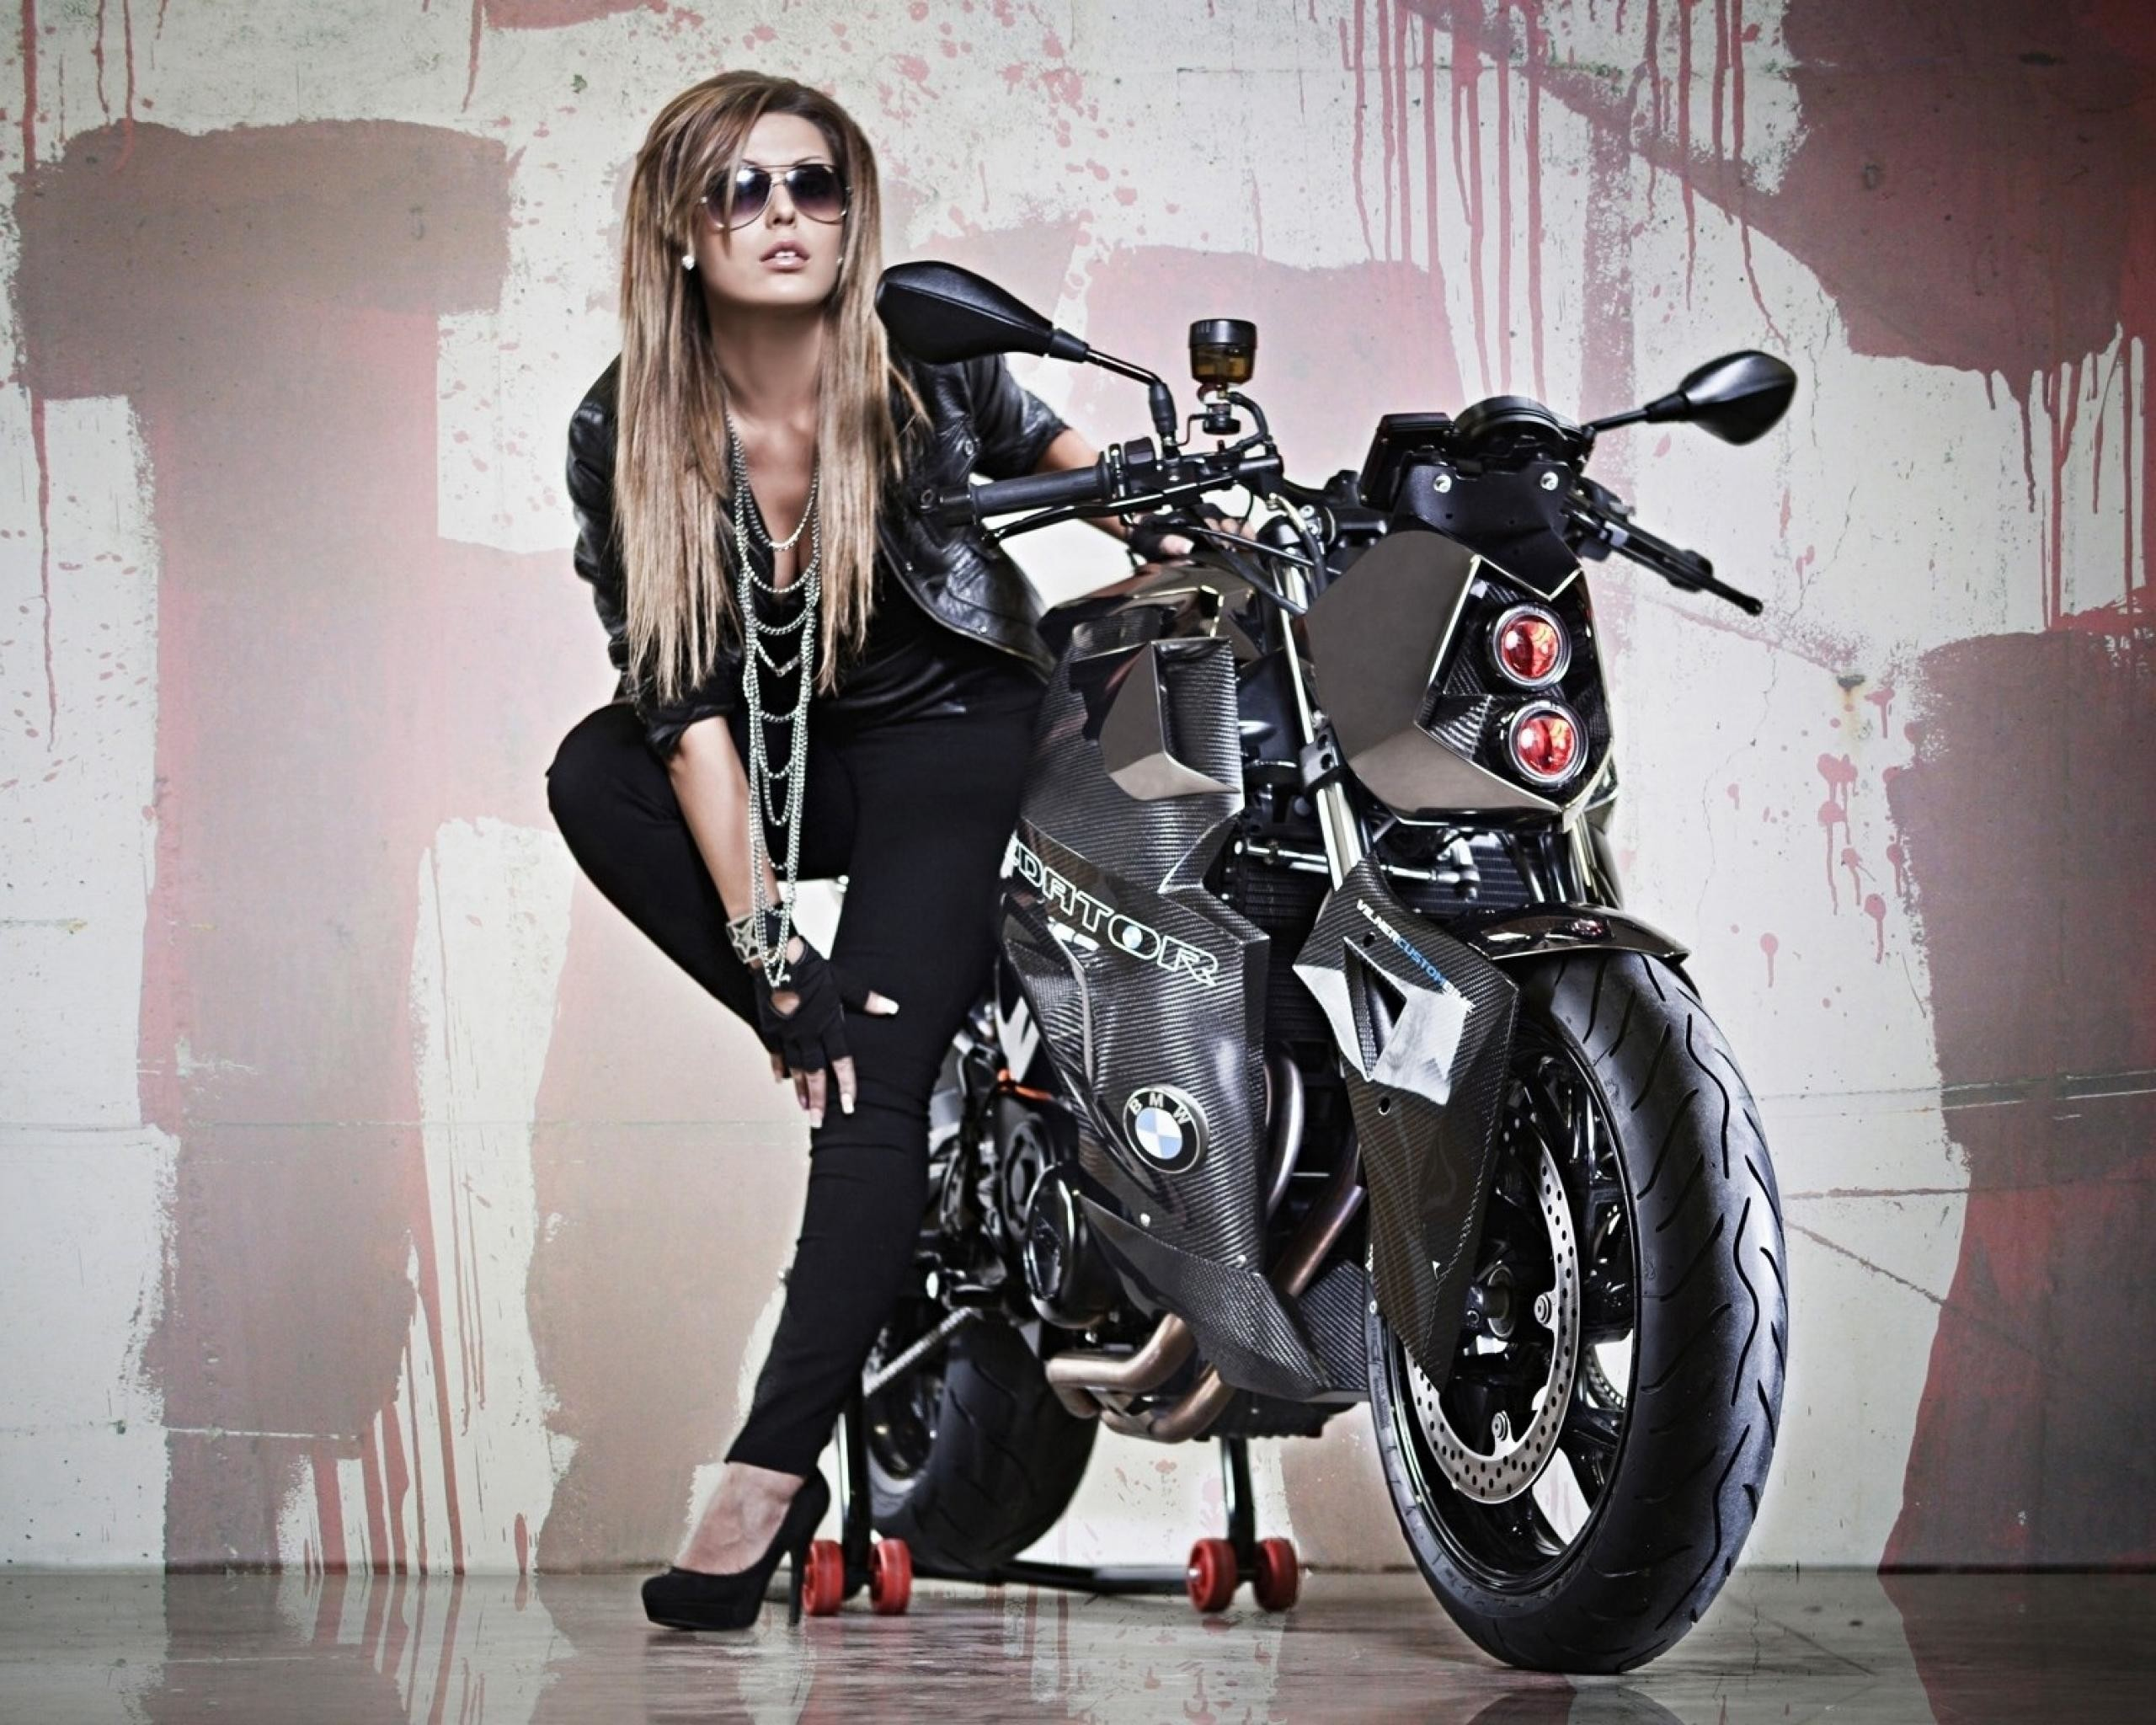 Cute Lady Wallpaper Hd Hd Wallpapers Motorcycles And Girls 70 Images